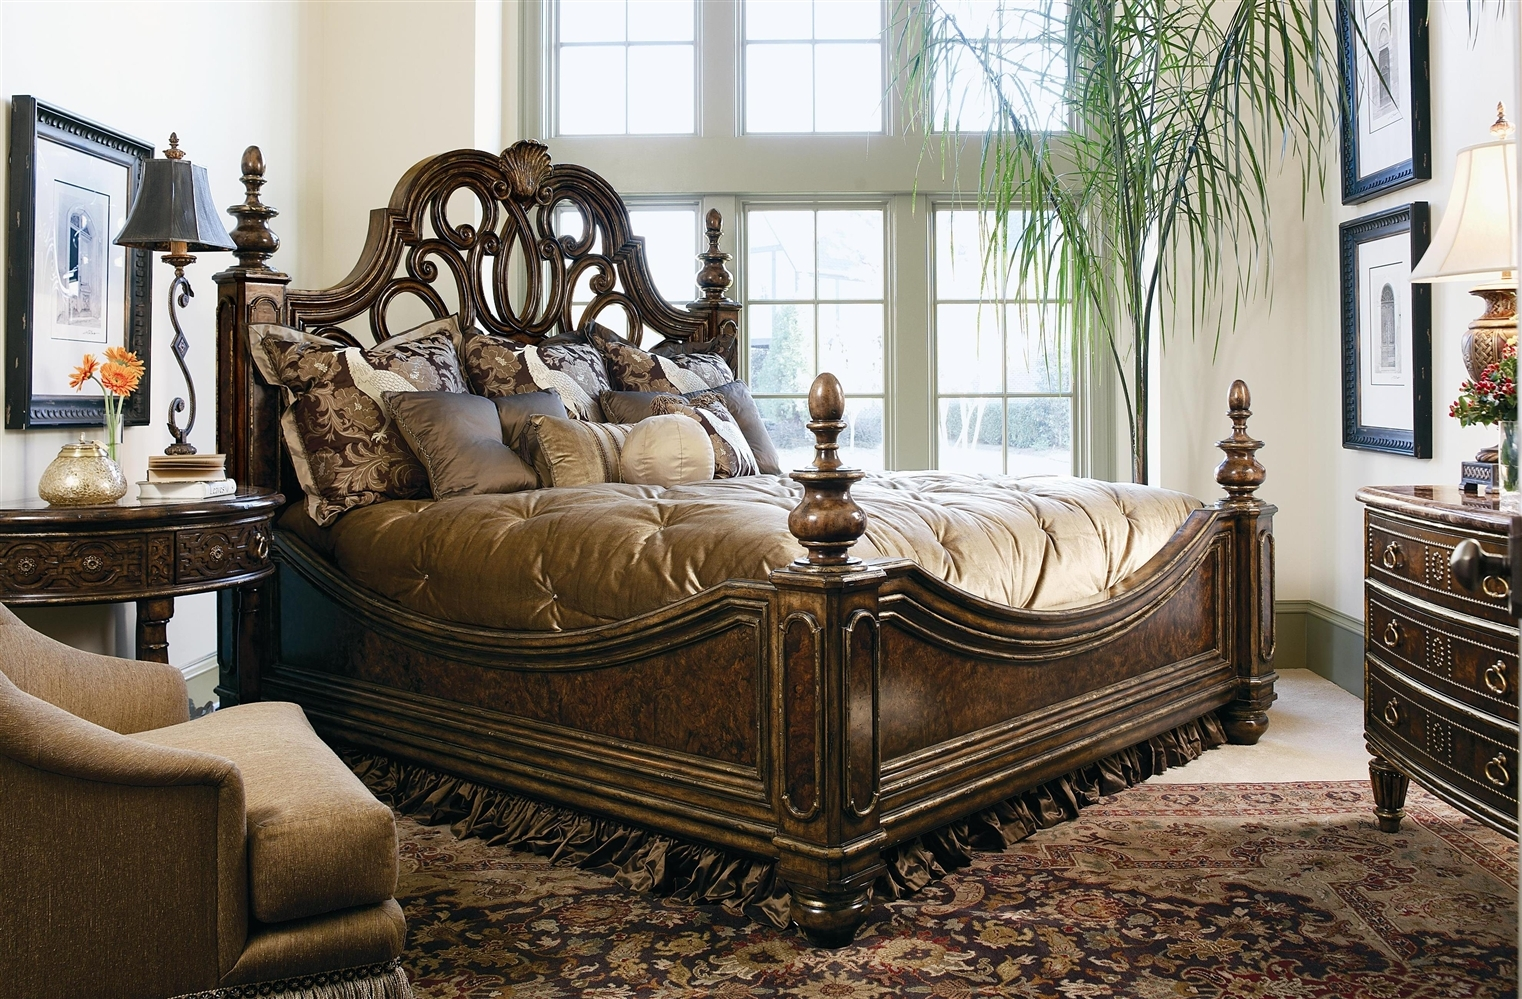 2 High End Master Bedroom Set Manor Home Collection